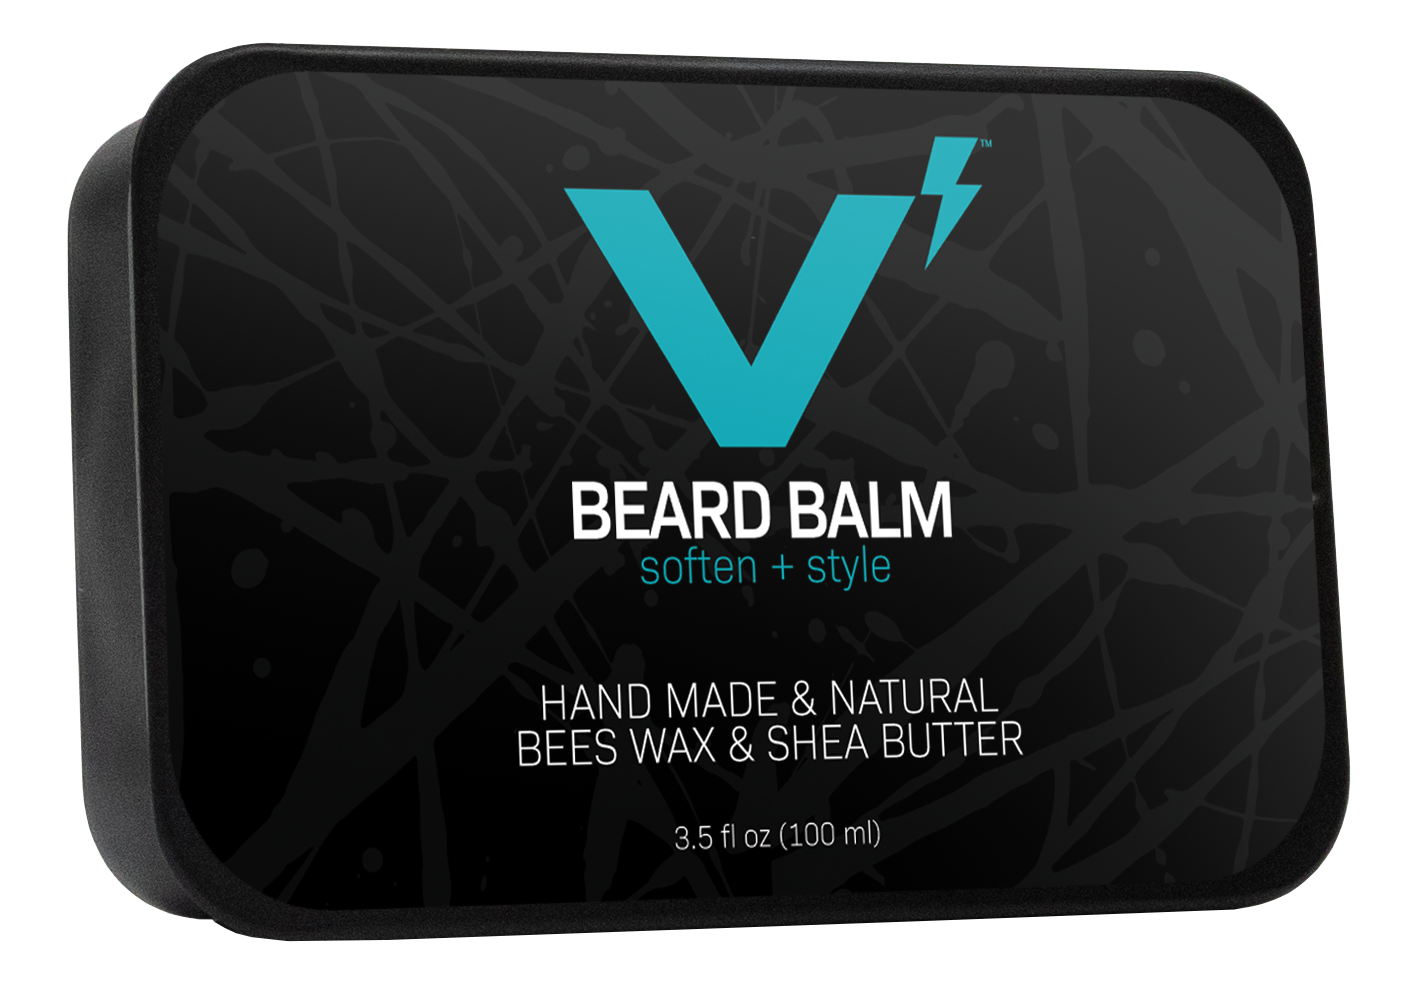 Large Beard Balm Angled Clean Background Photo